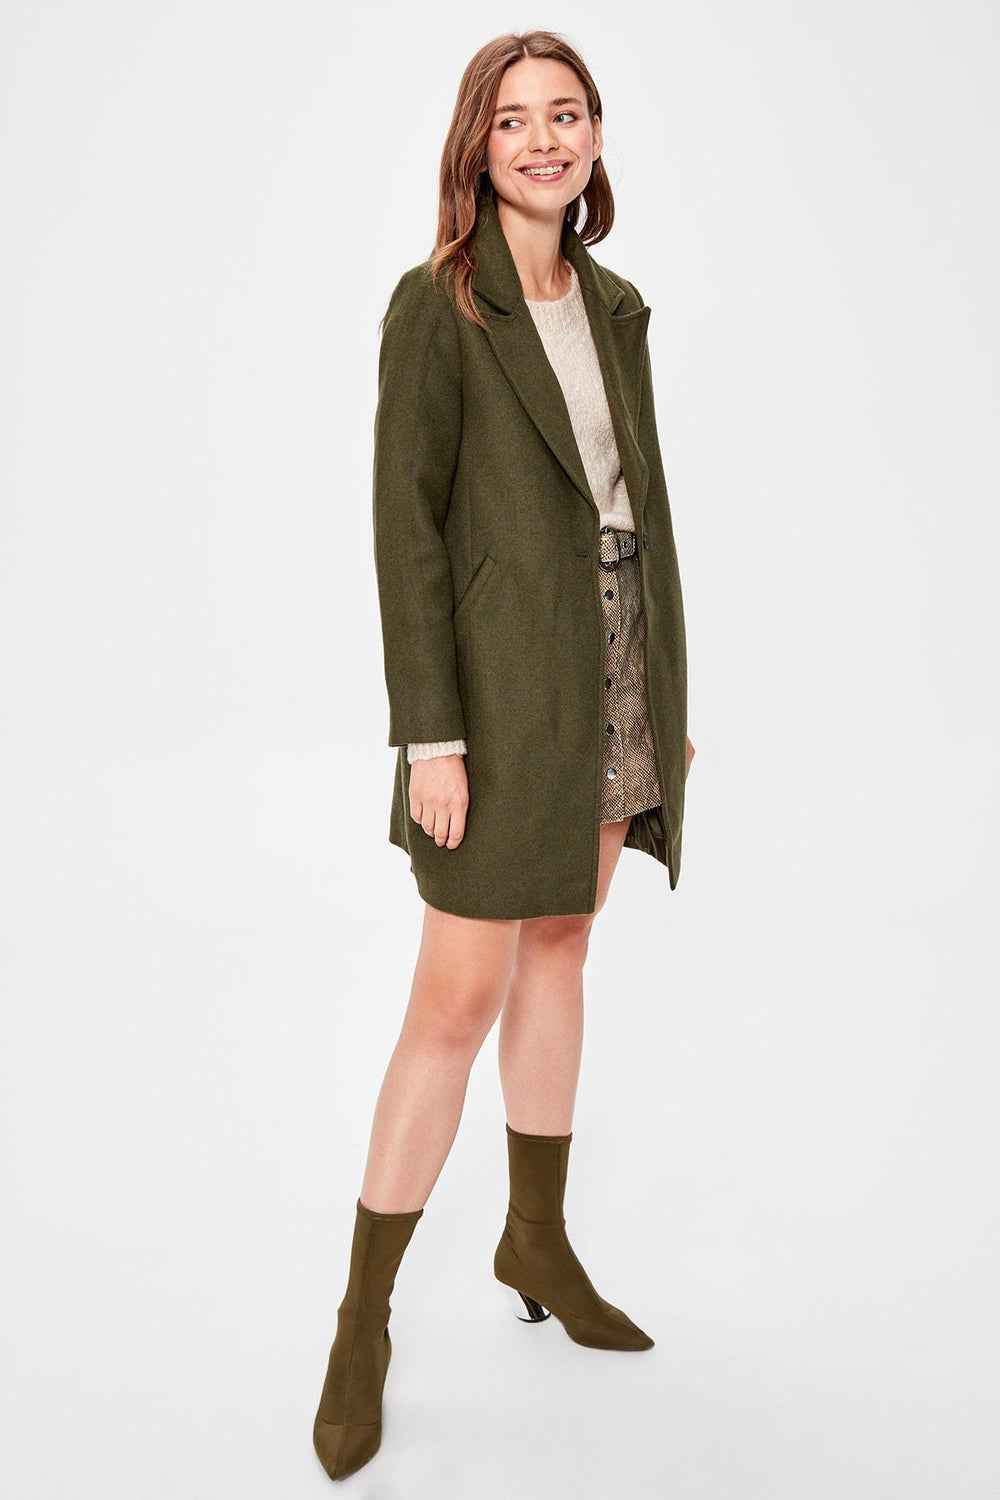 Khaki Woolen Stamp Coat - Top Maxy